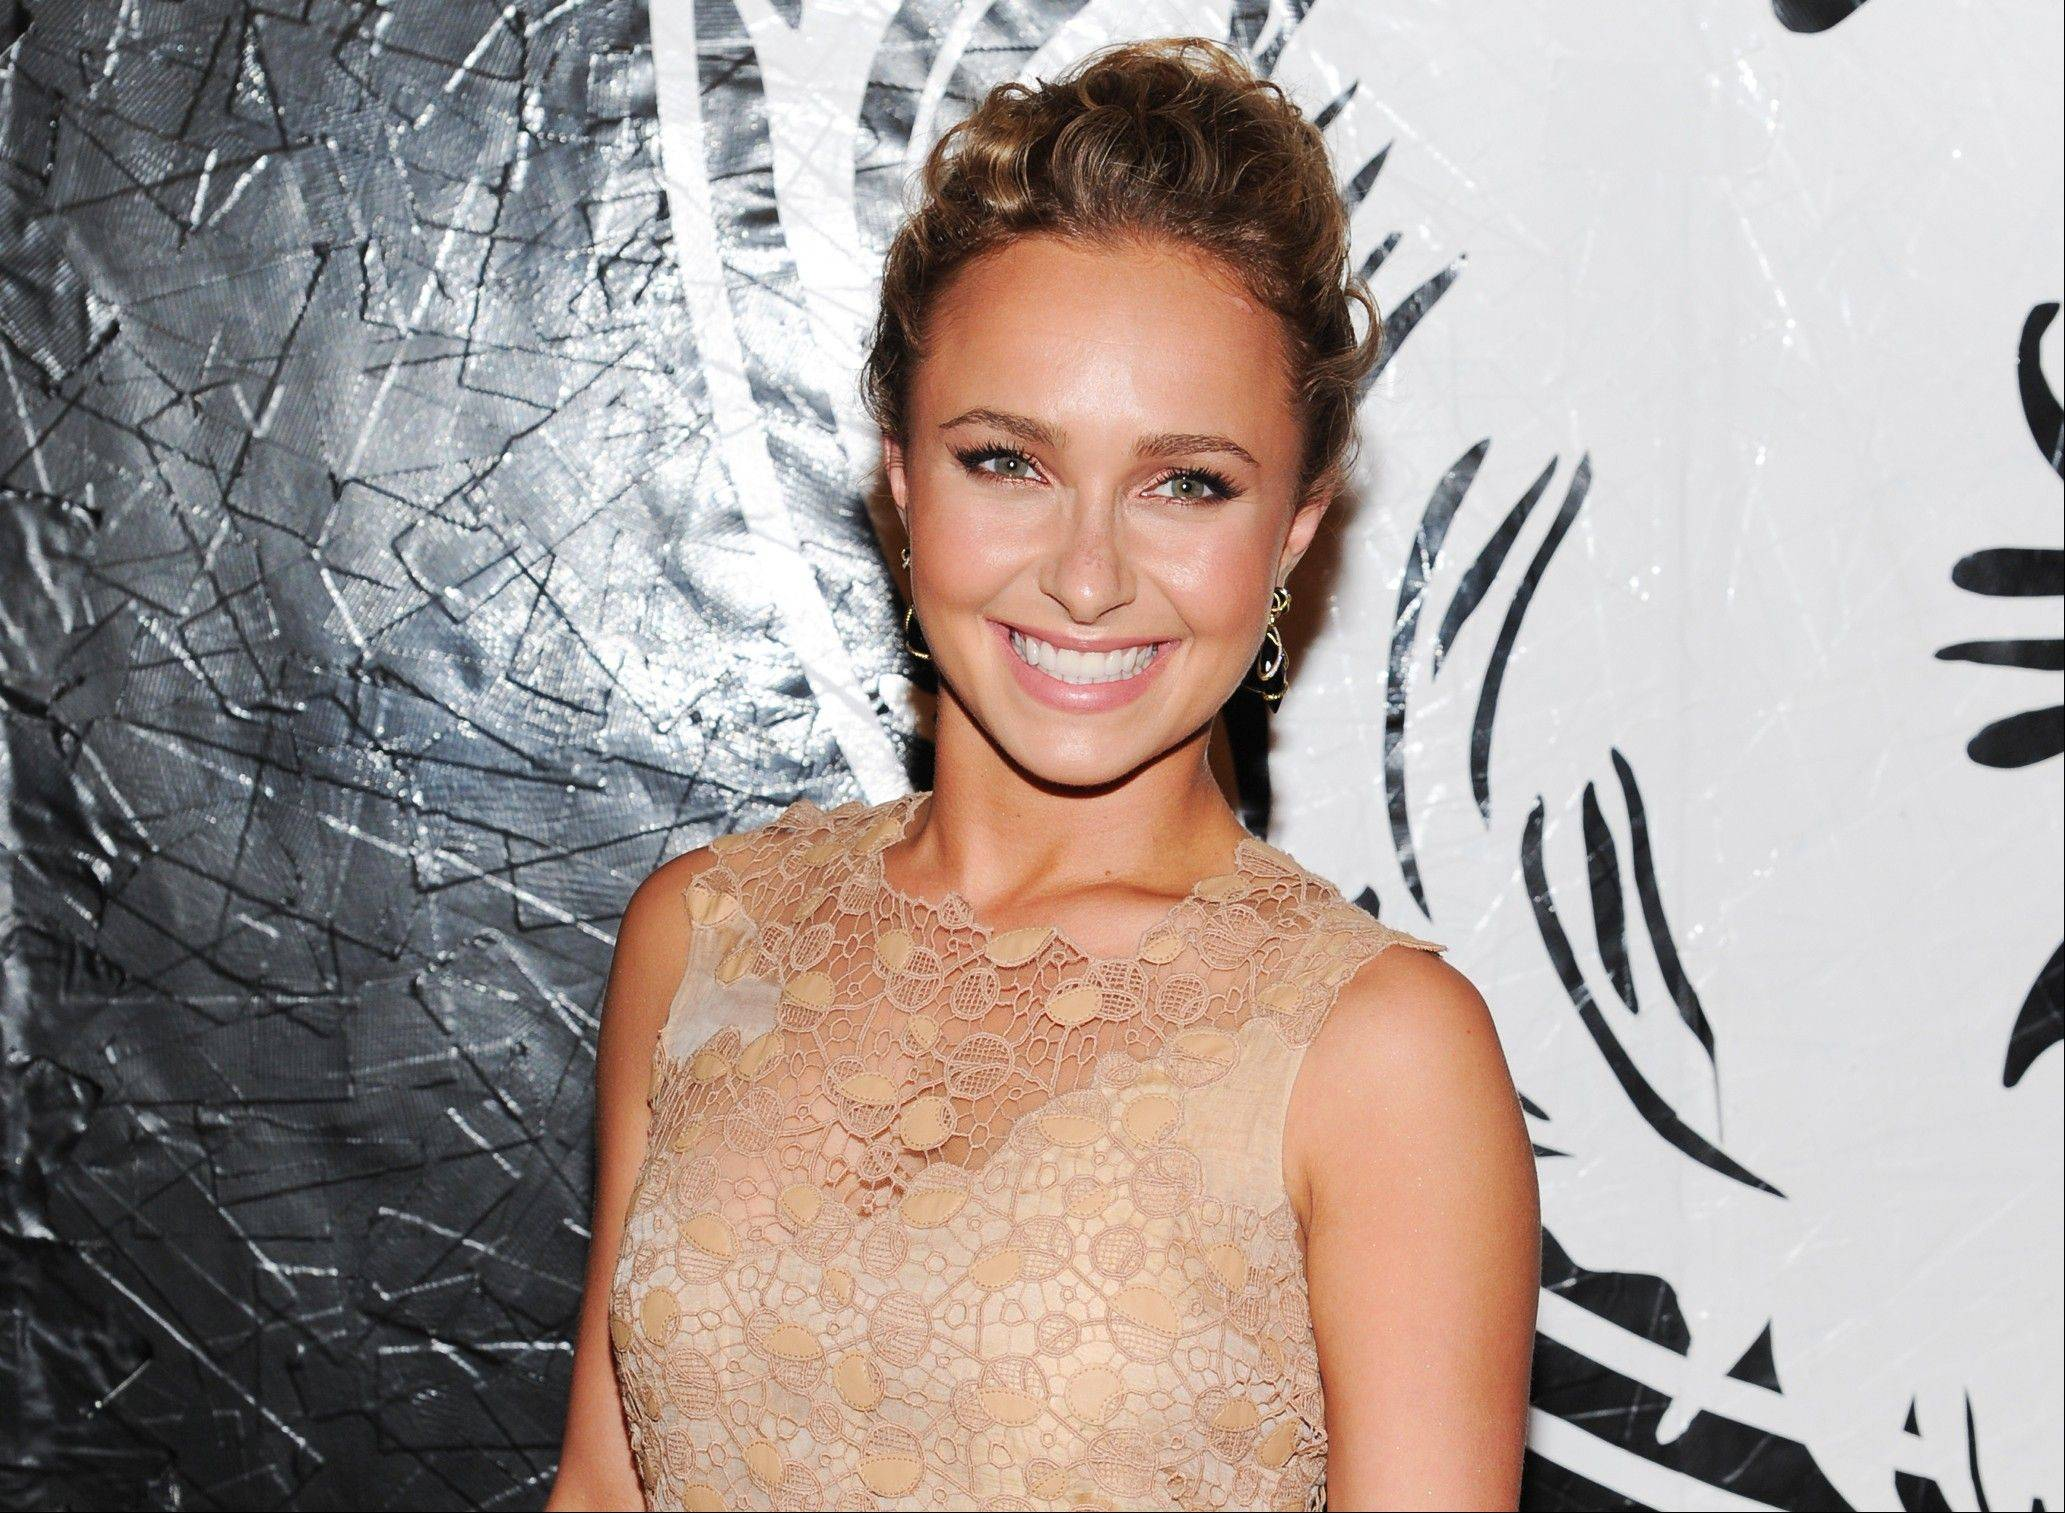 Hayden Panettiere has confirmed her engagement to Olympic boxer Wladimir Klitschko.